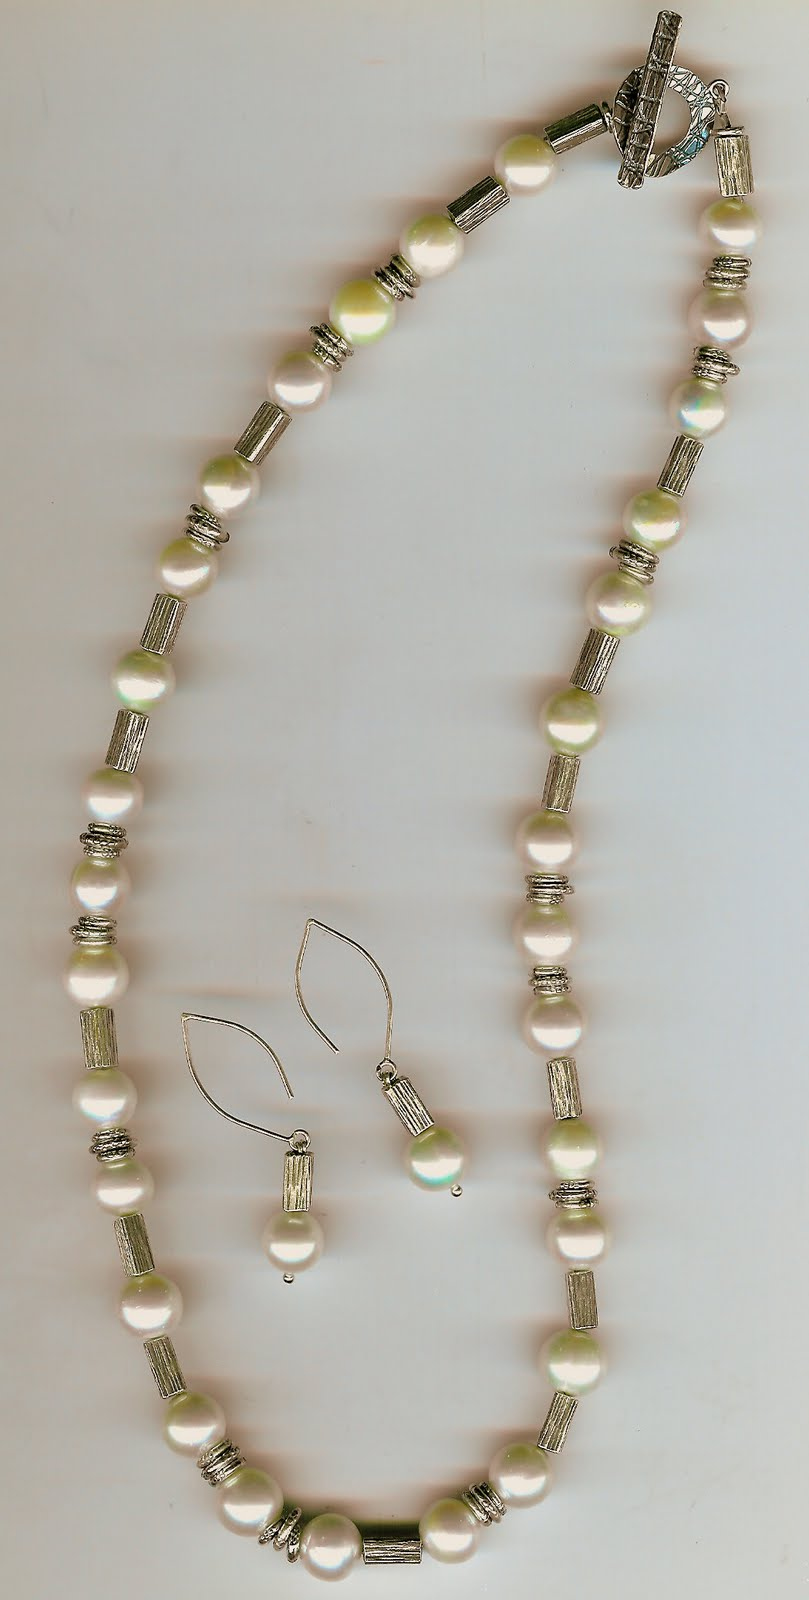 181. Akoya Pearls with Karen Hill Thai Sterling Silver + Earrings